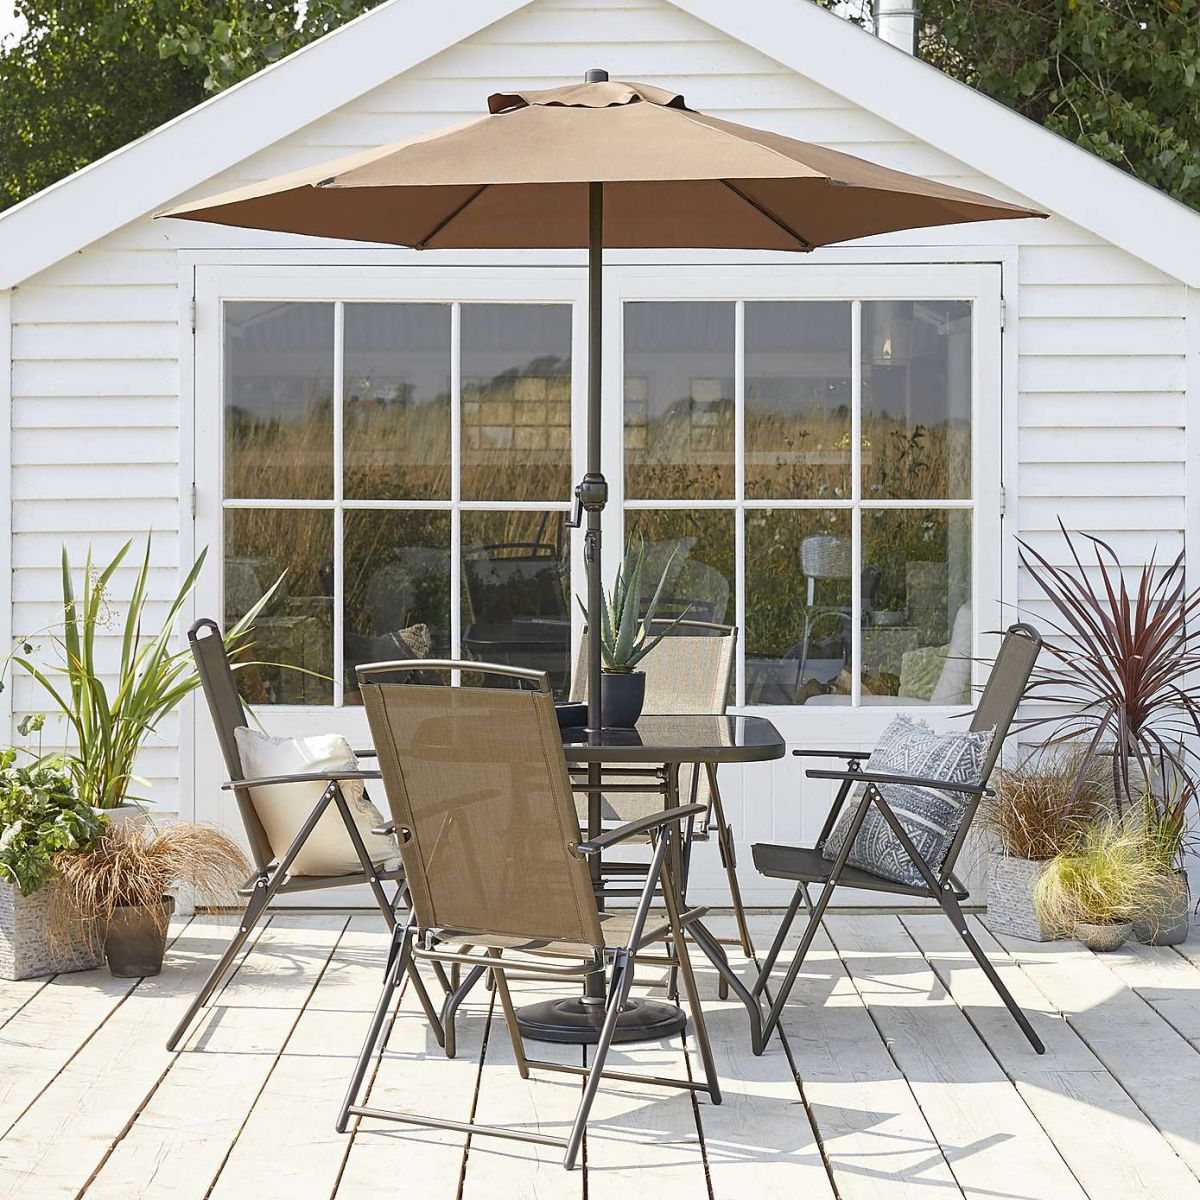 This Dunelm garden furniture is giving us holiday vibes (and we